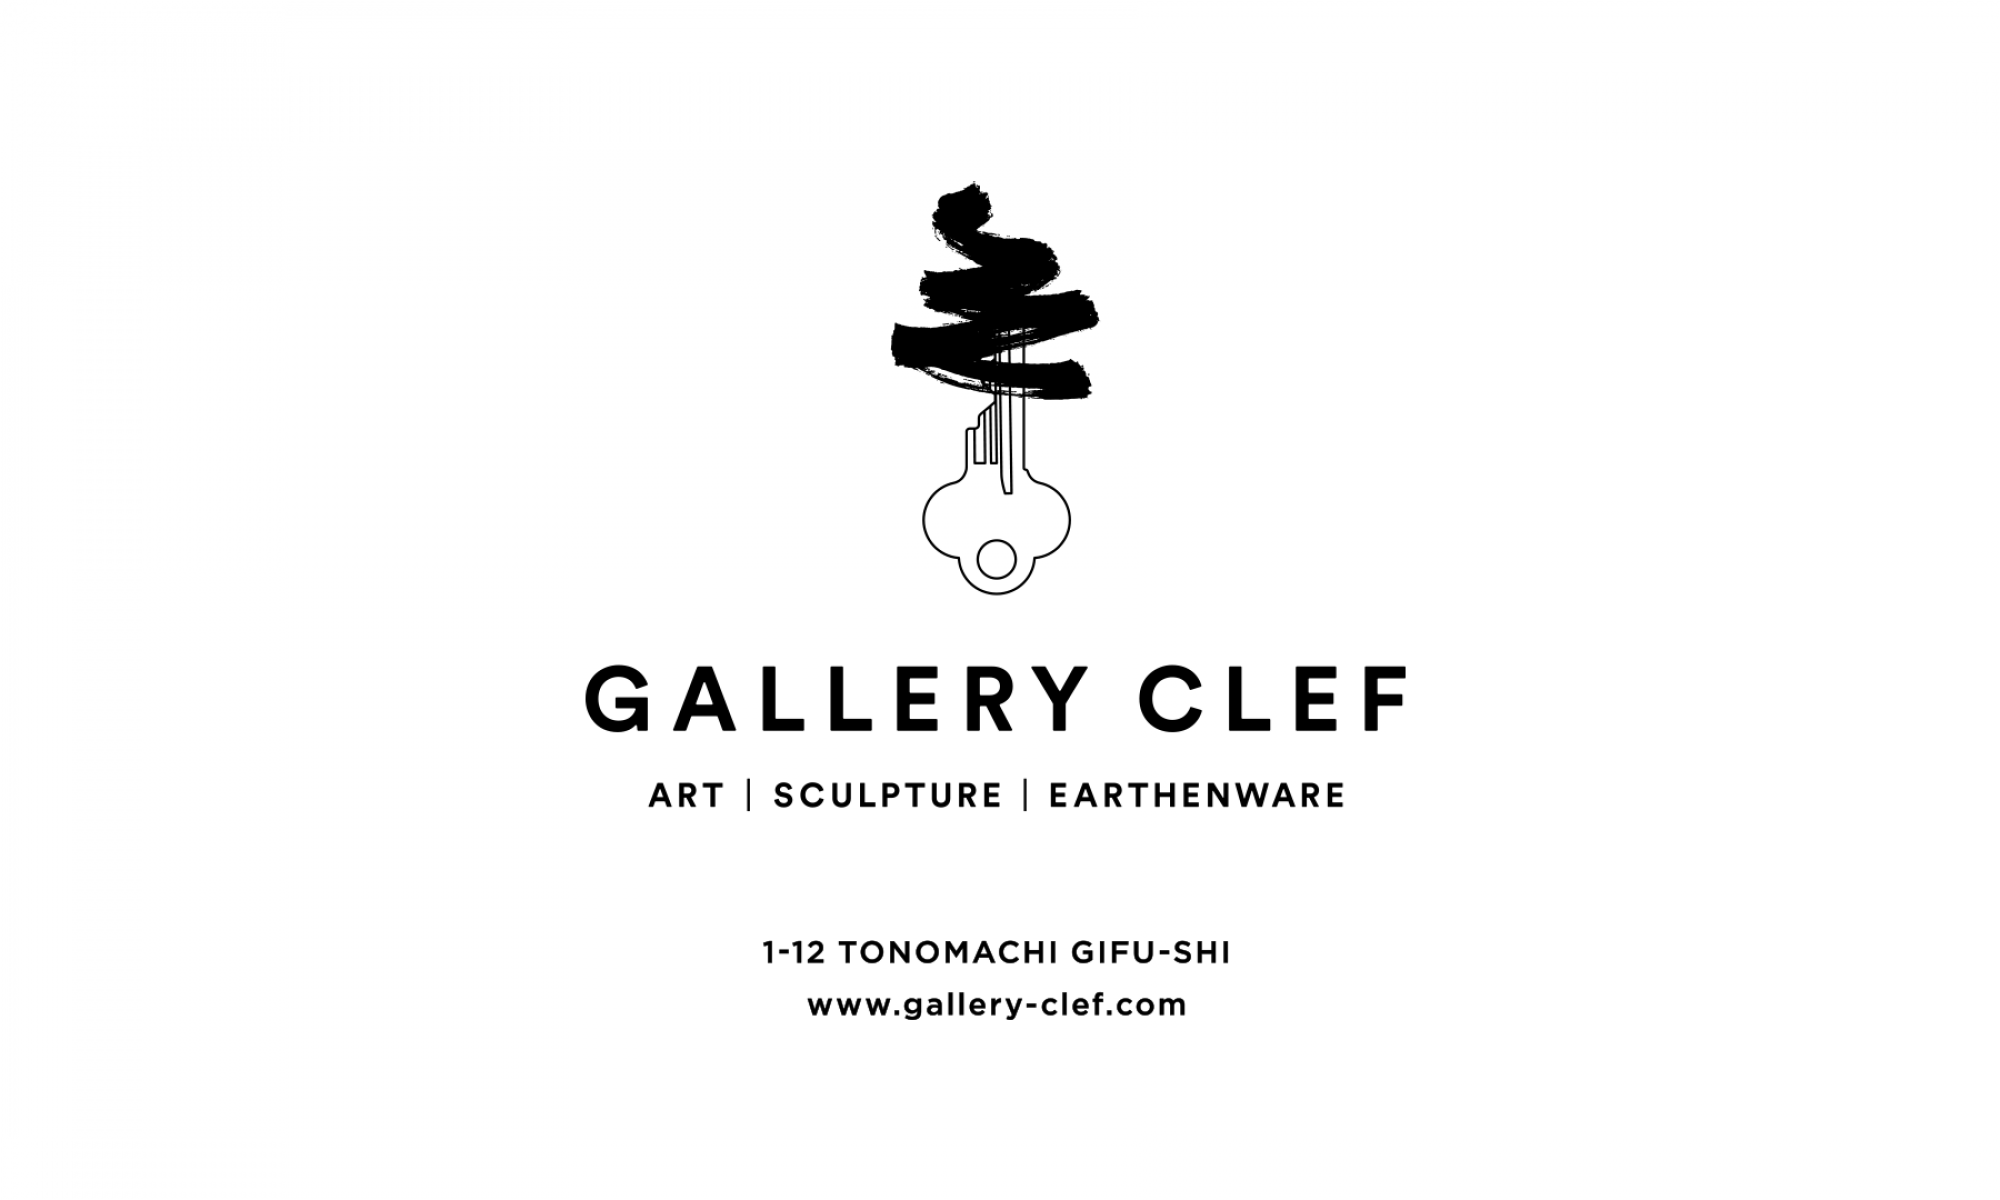 Gallery Clef